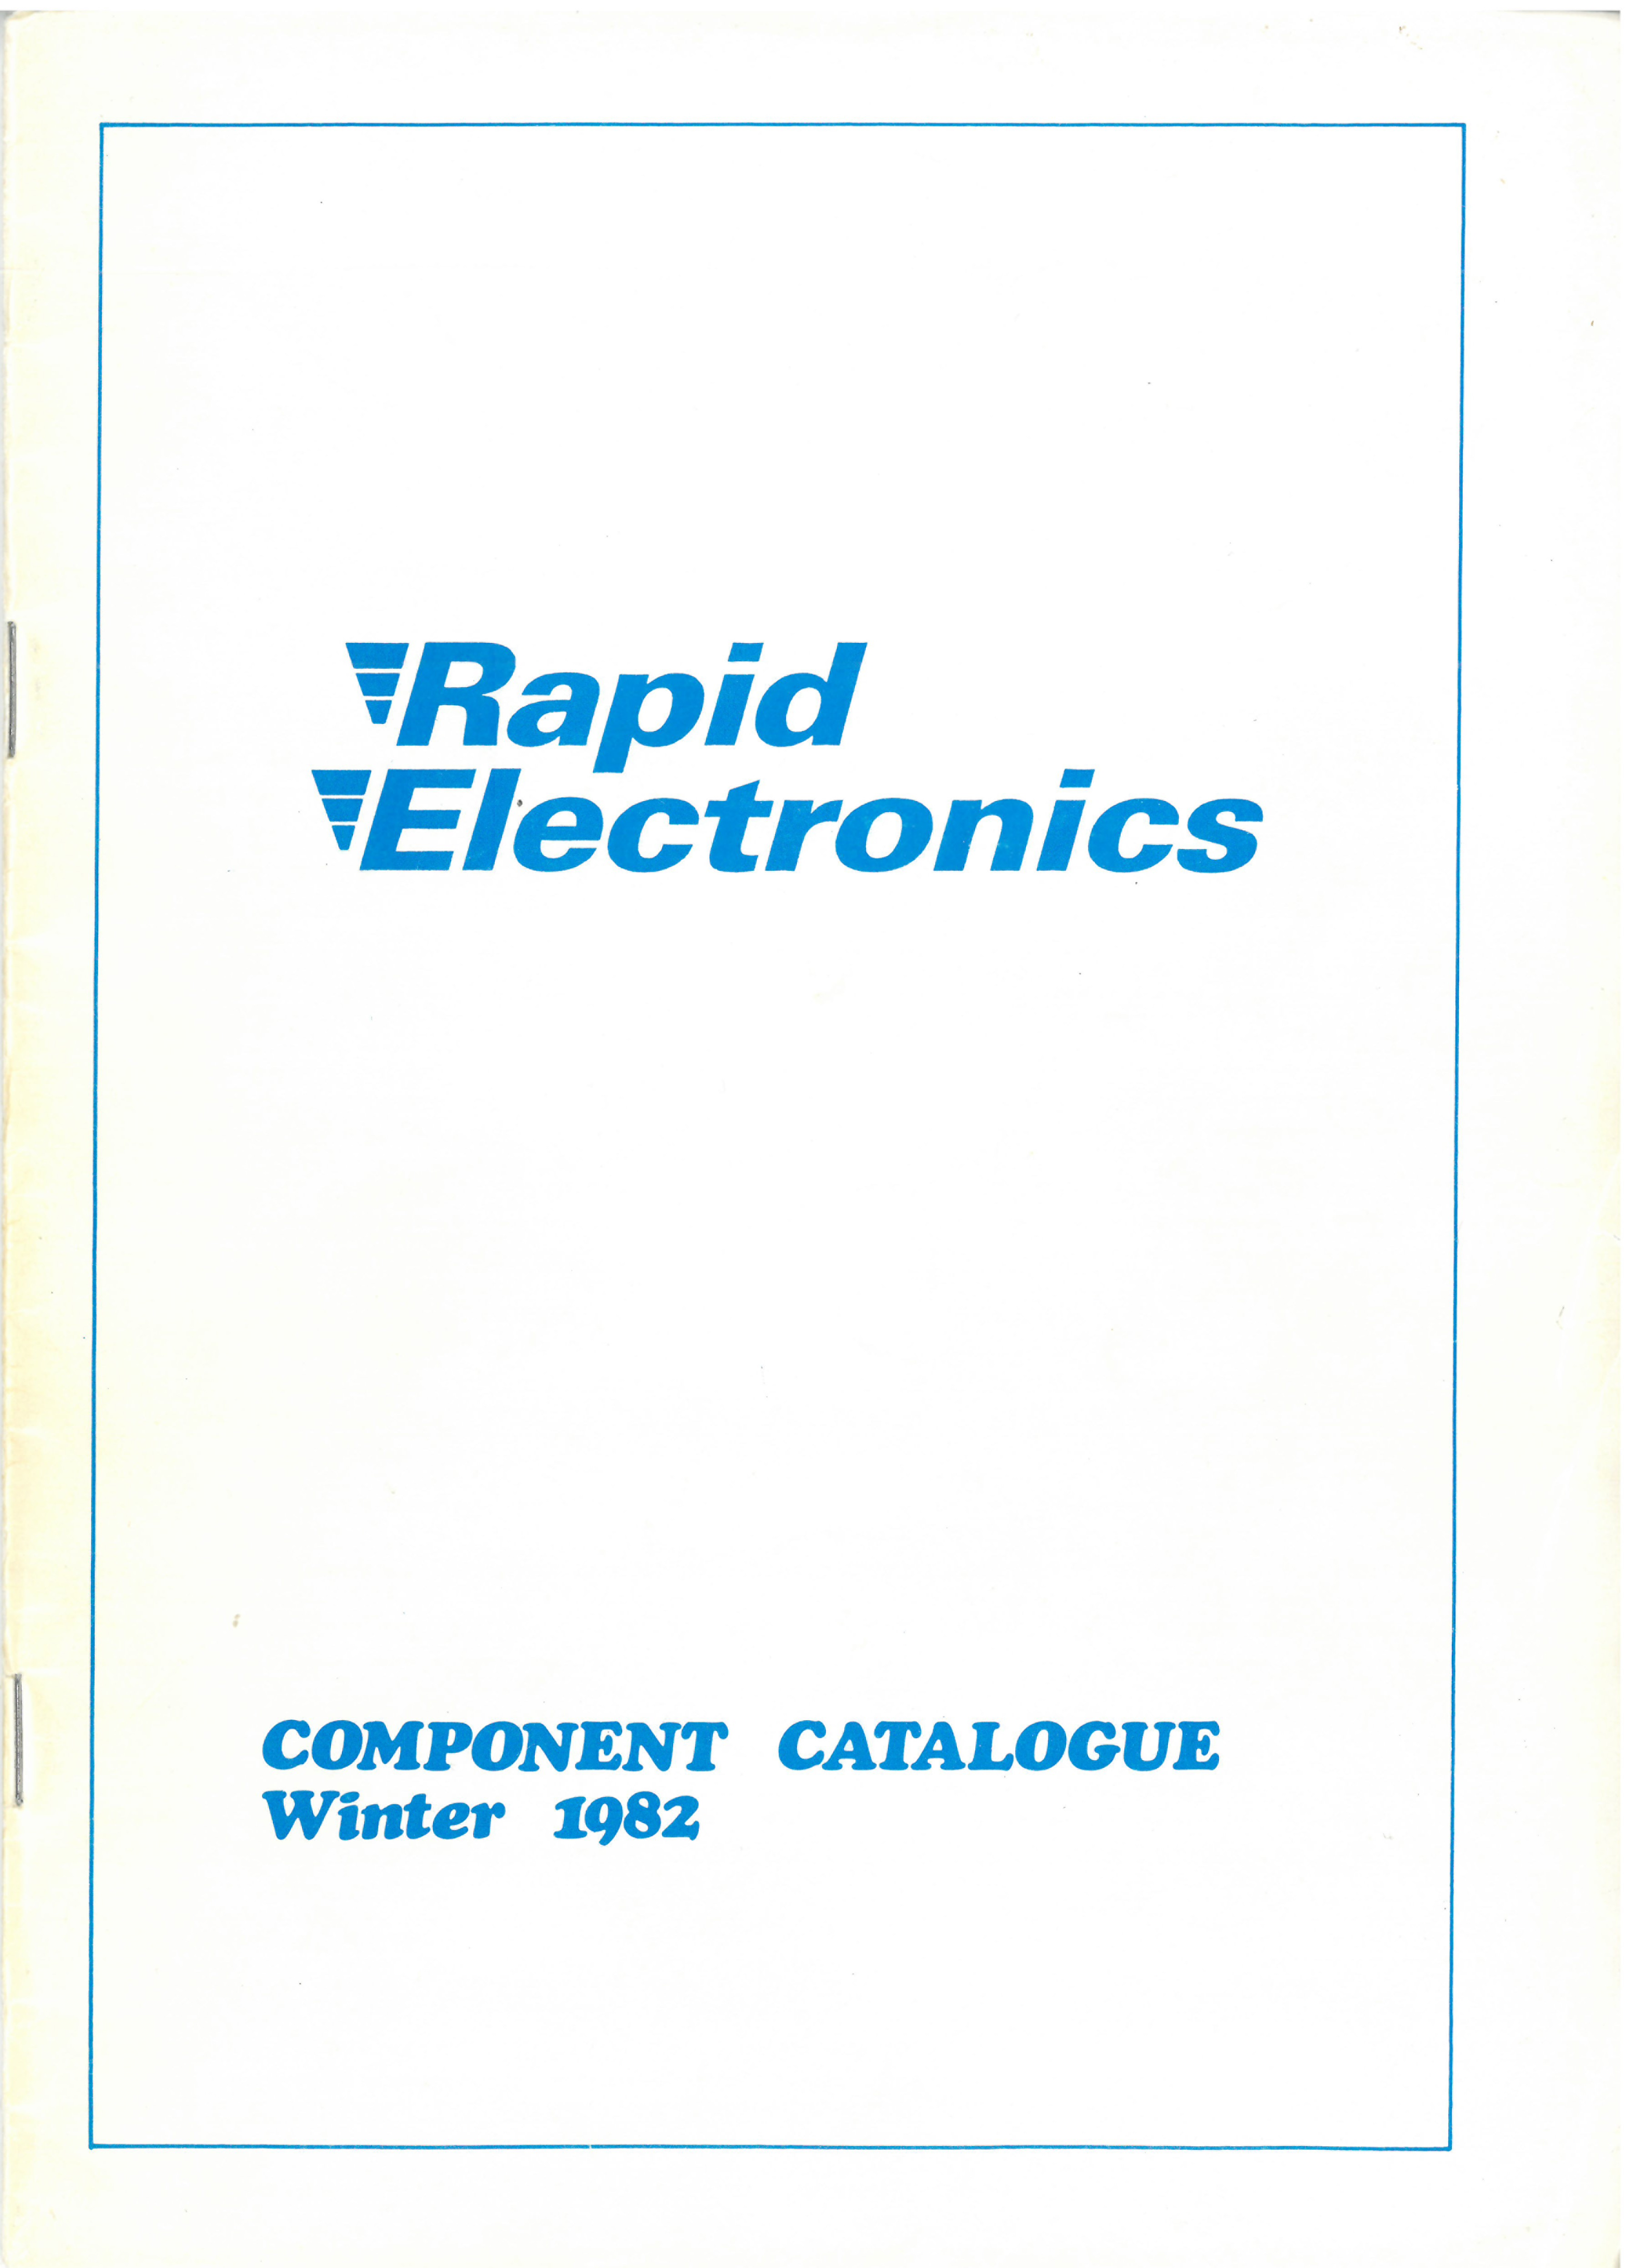 1982 - First catalogue printed